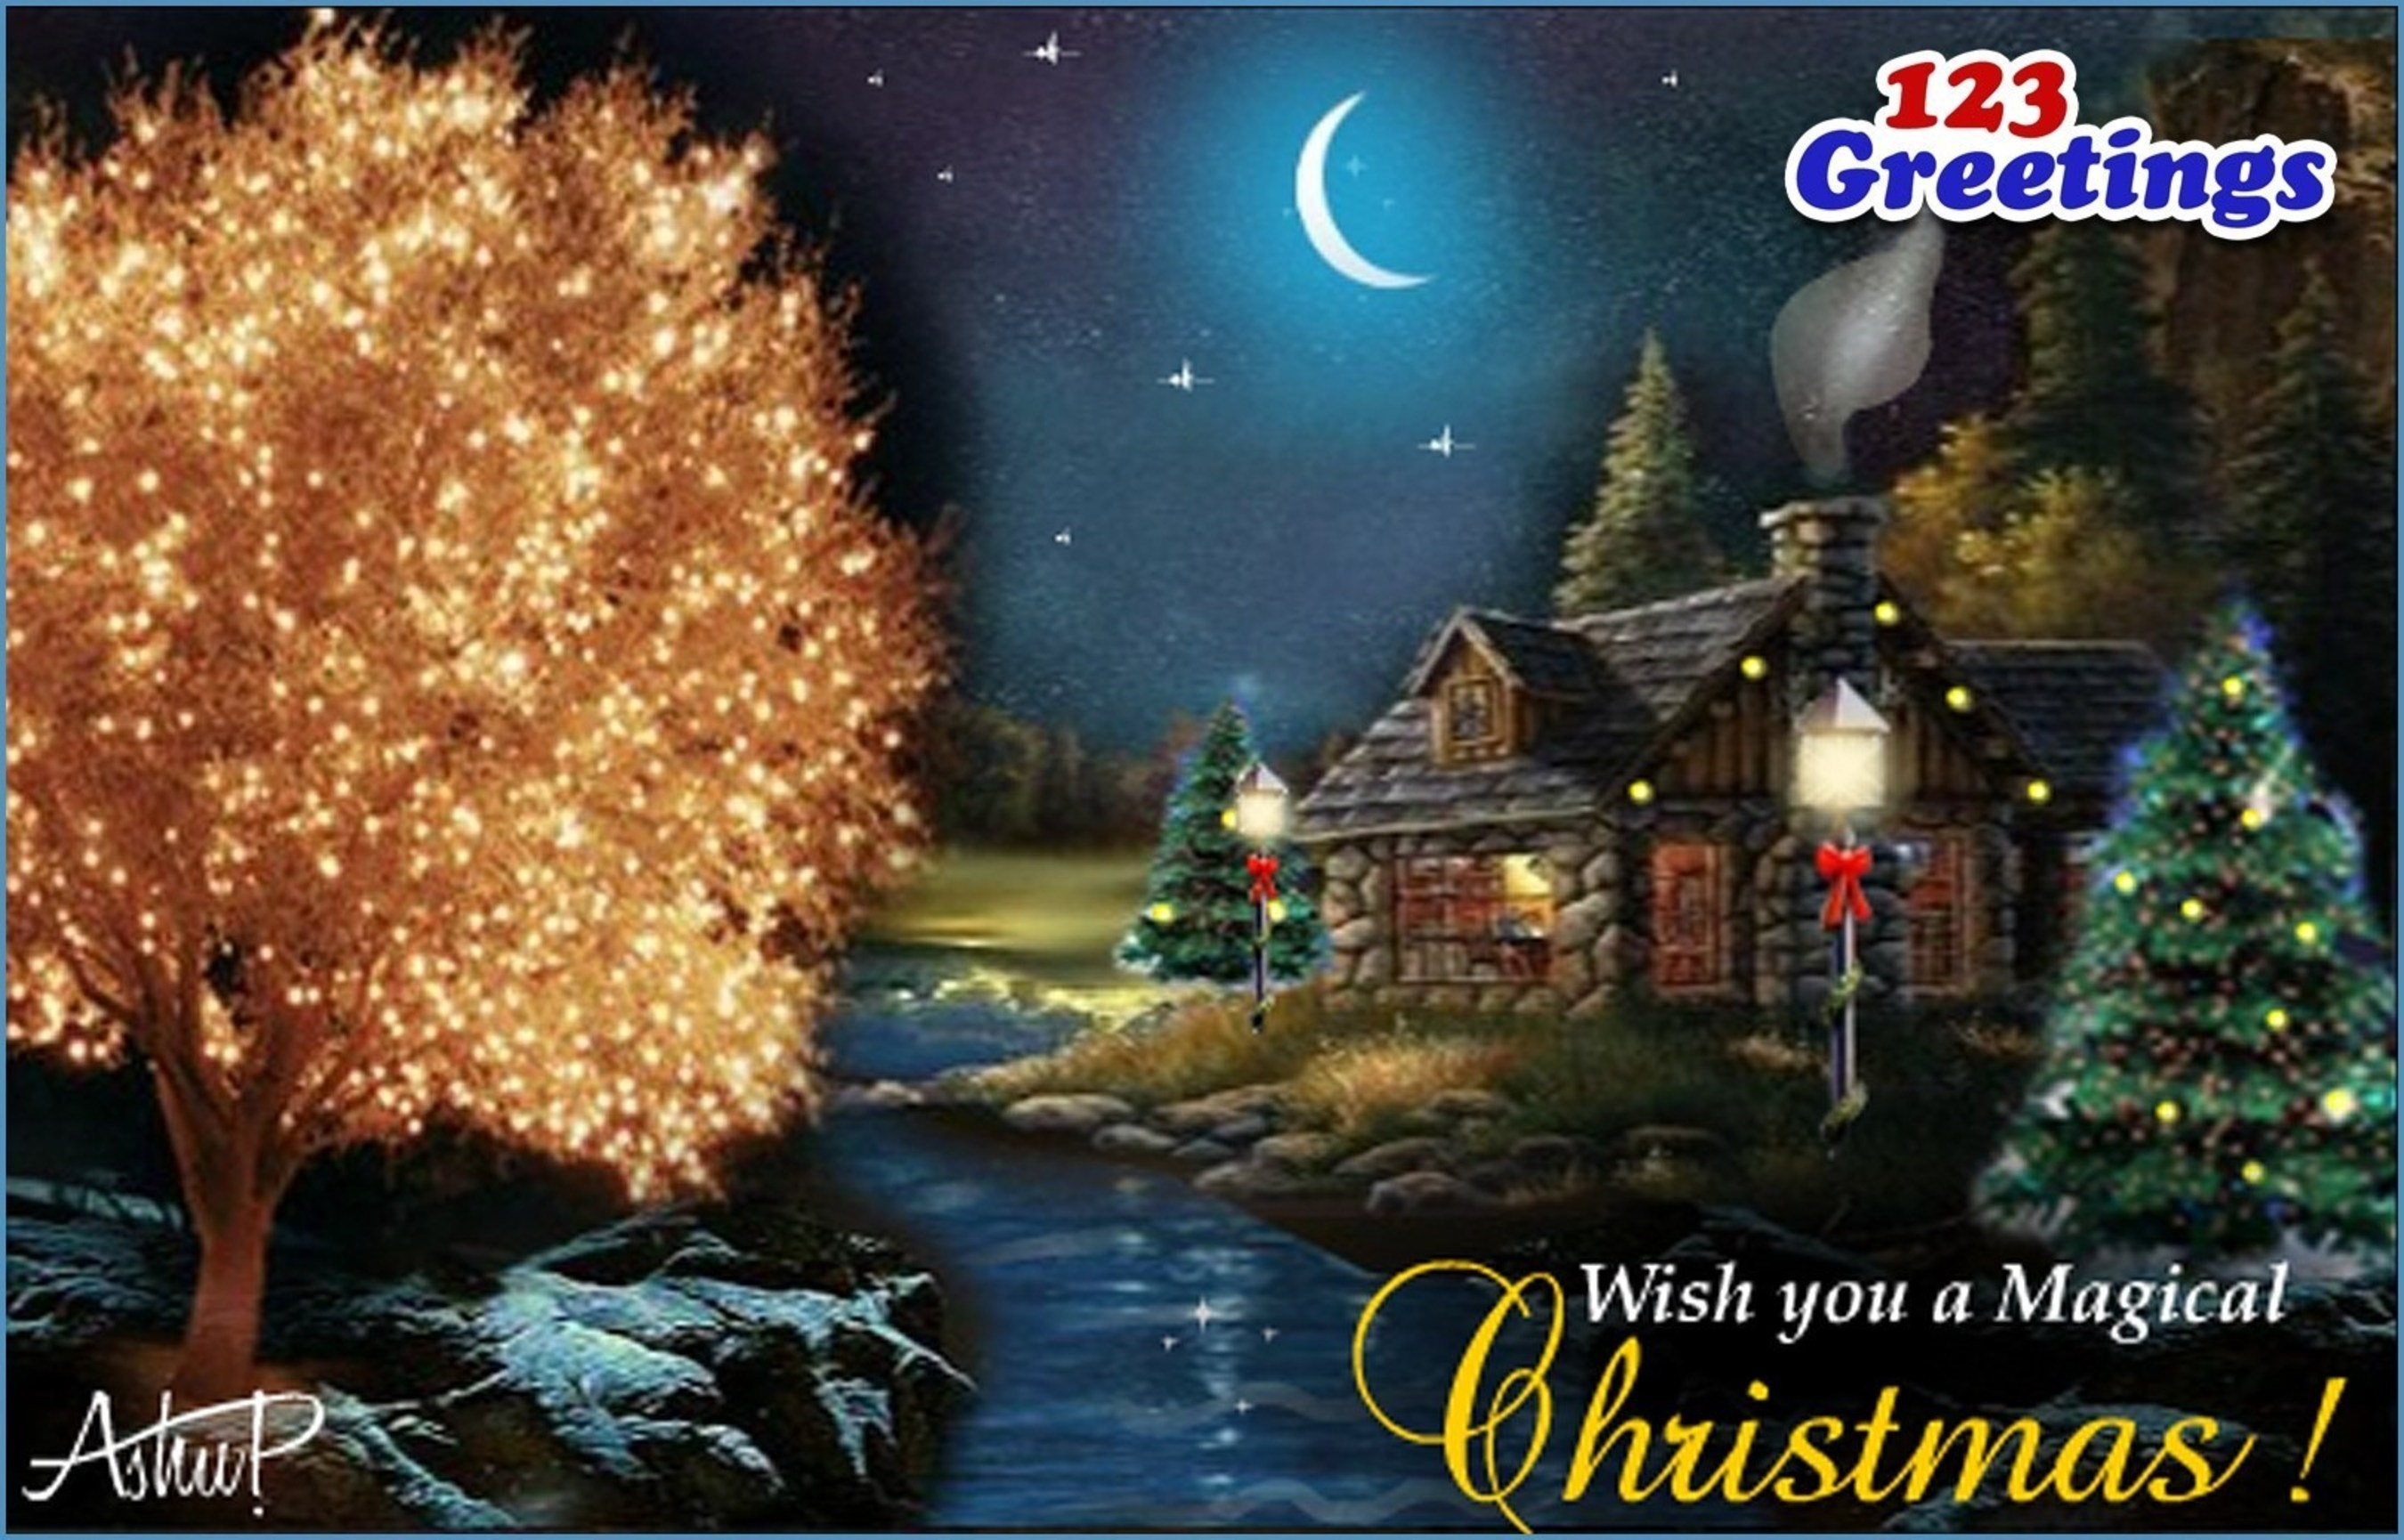 123greetings com reveals its most trending ecards for christmas  2014